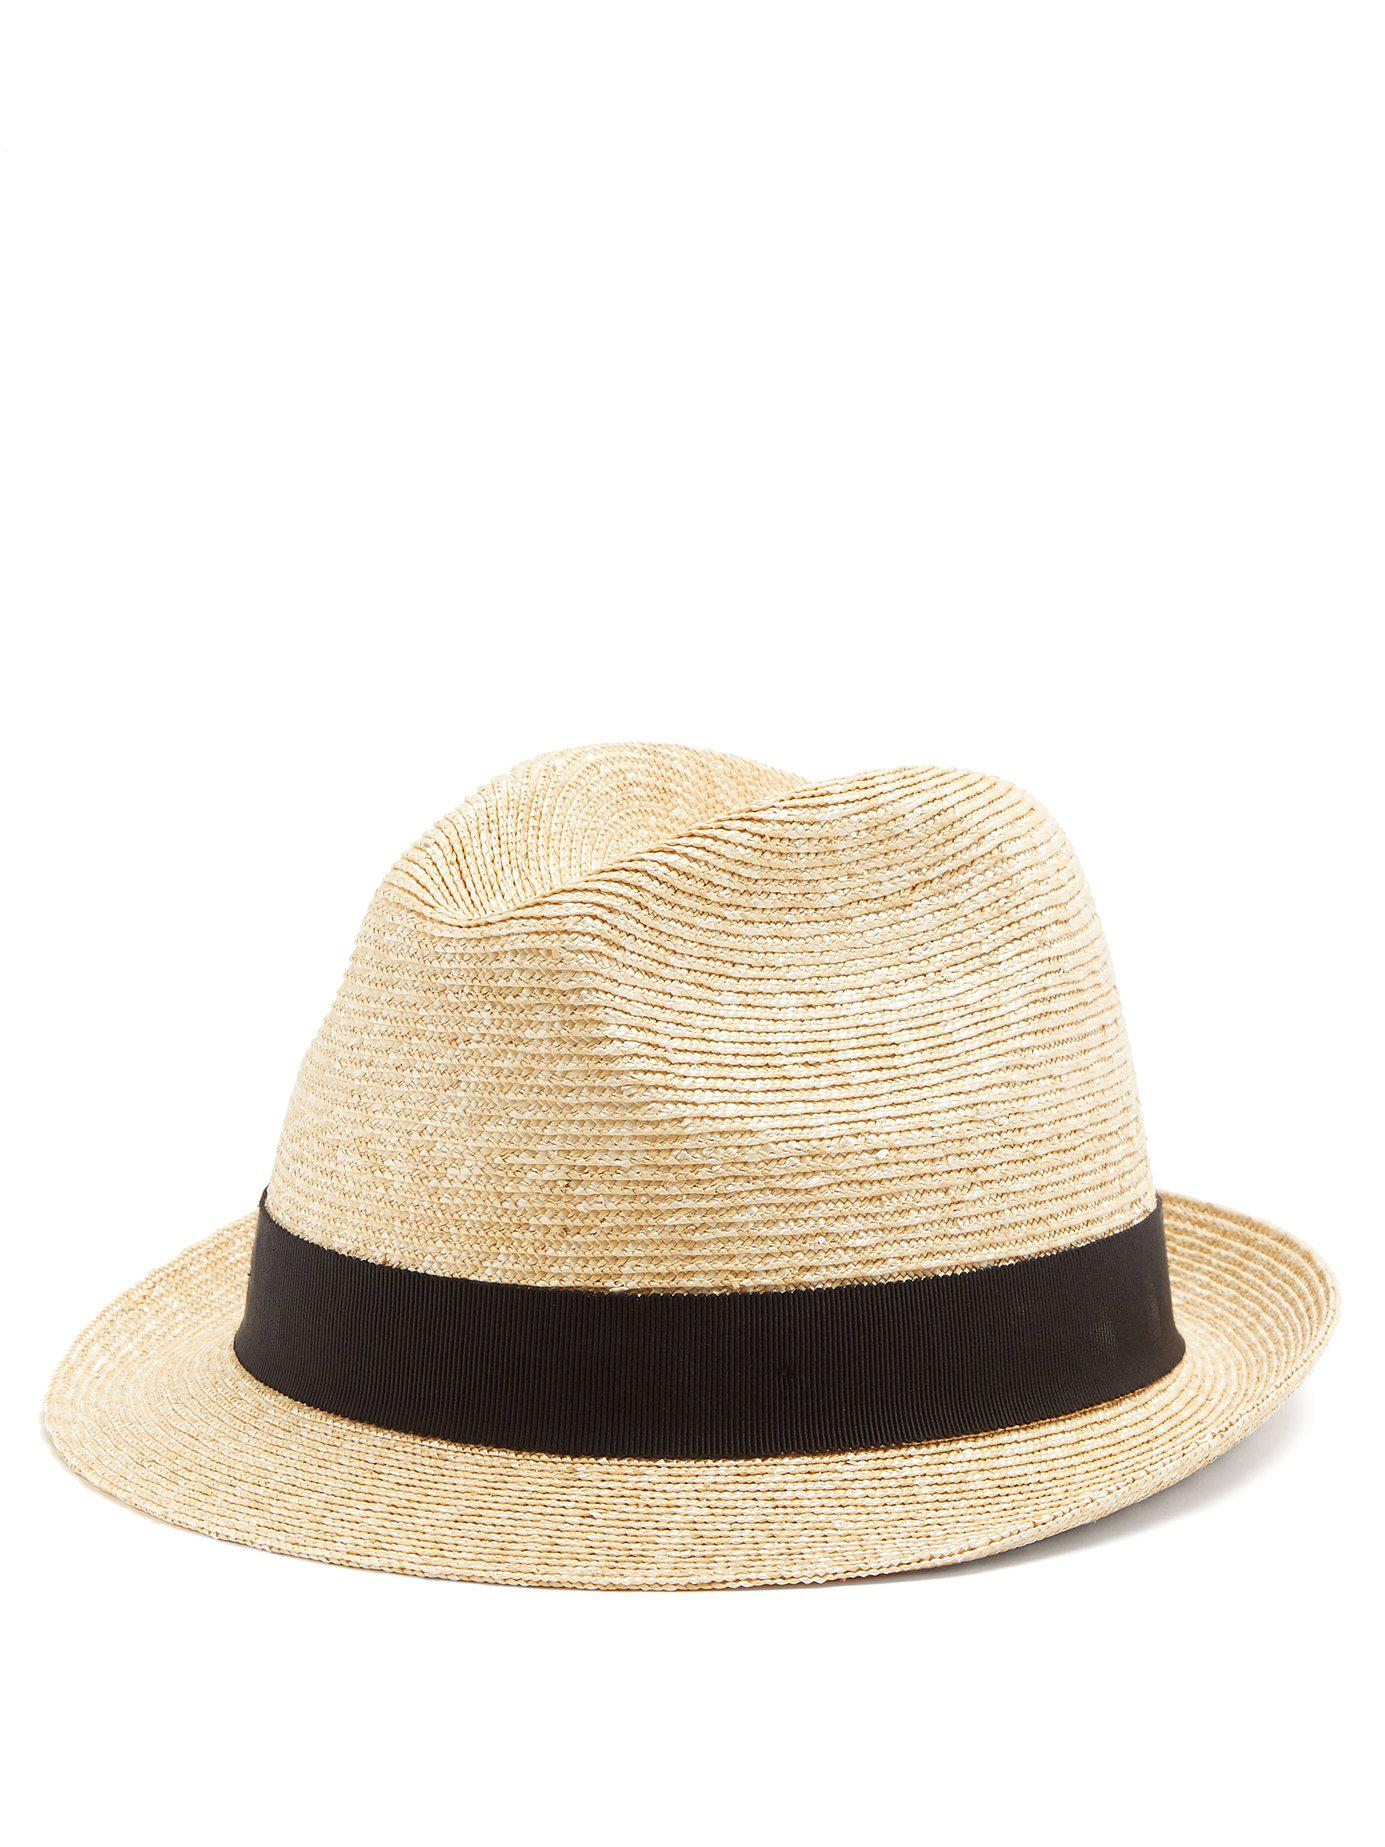 a328c163c2a Lyst - Prada Straw Hat in Brown for Men